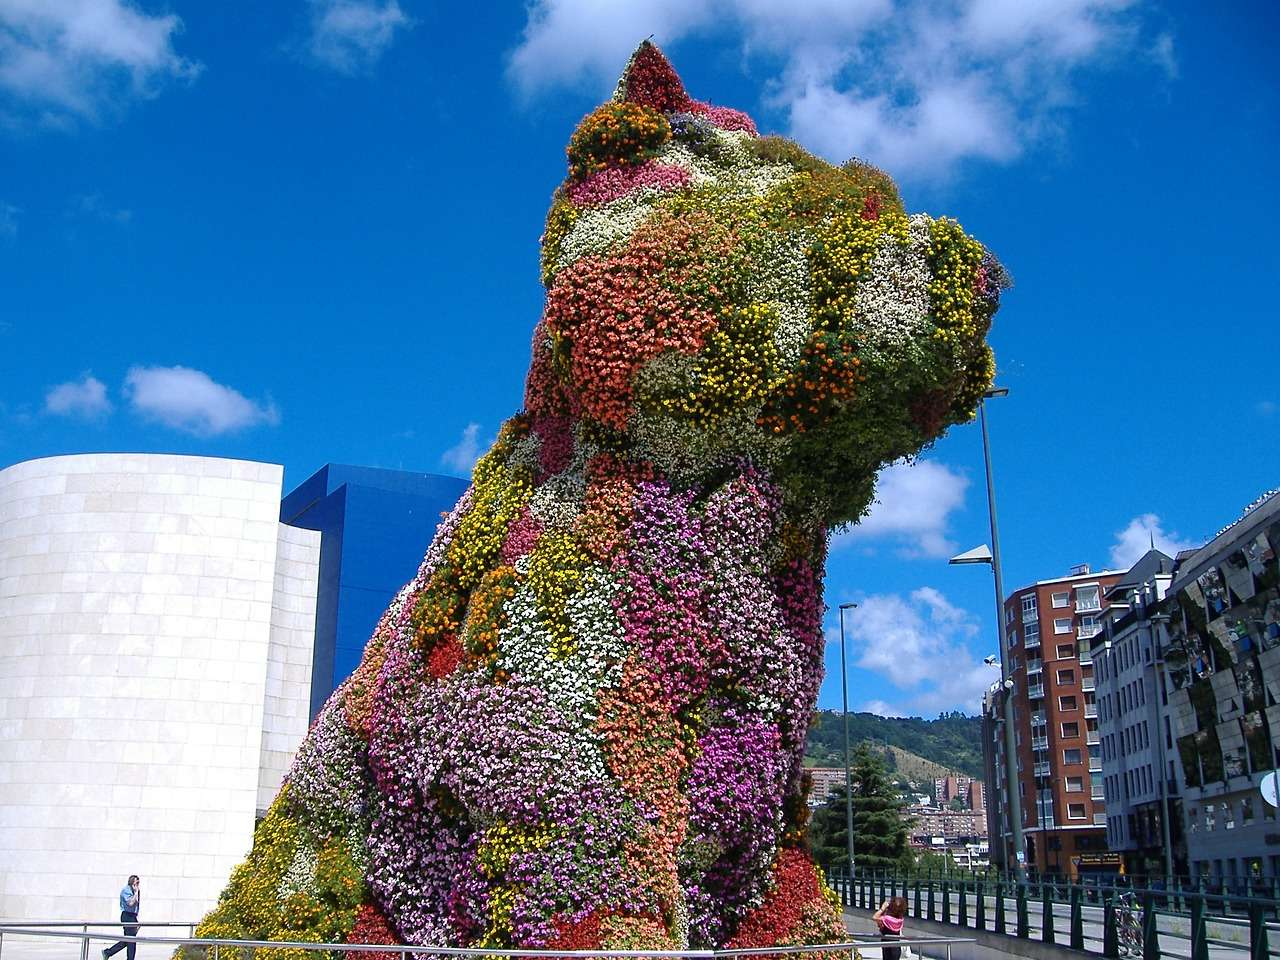 puppy flower bilbao museum - The Best Travel Guide to Bilbao, Spain